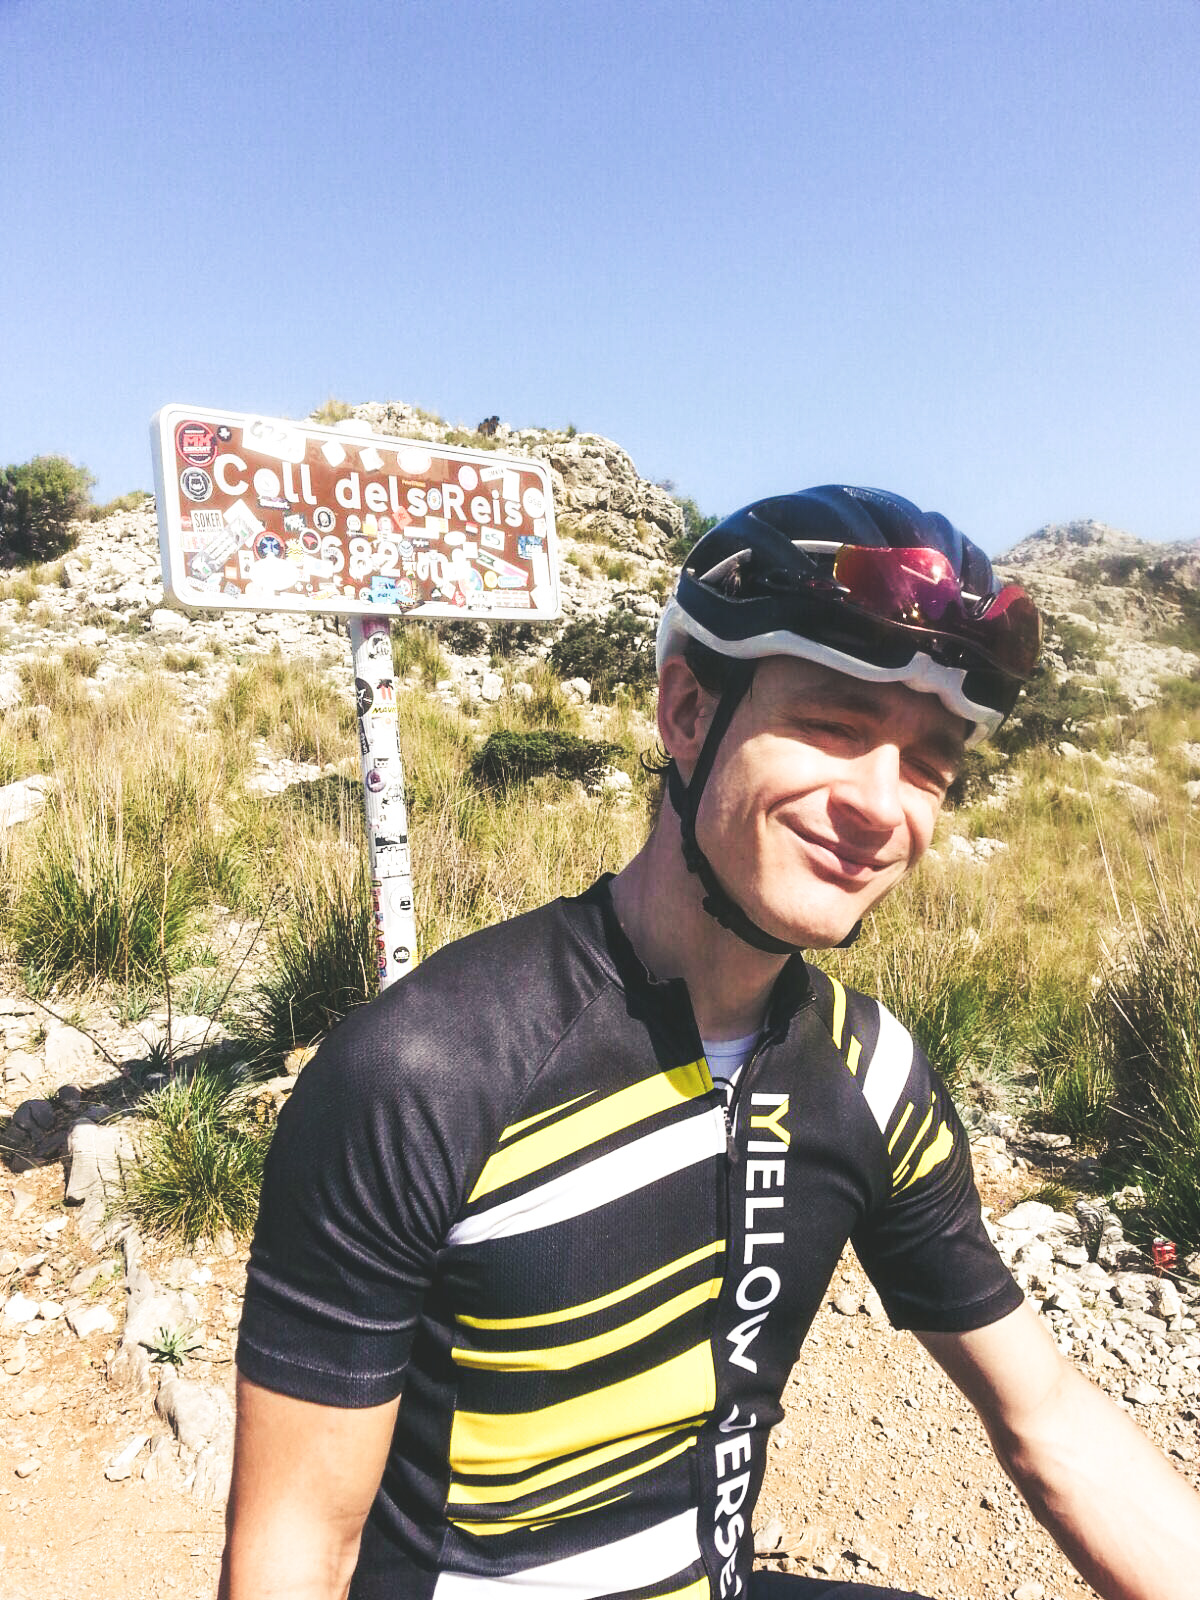 - Tom lives and breathes cycling, working in the industry, races and spends most of his time training (or eating). Tom is a fantastic guide, who'll challenge you to take your cycling to the next level!